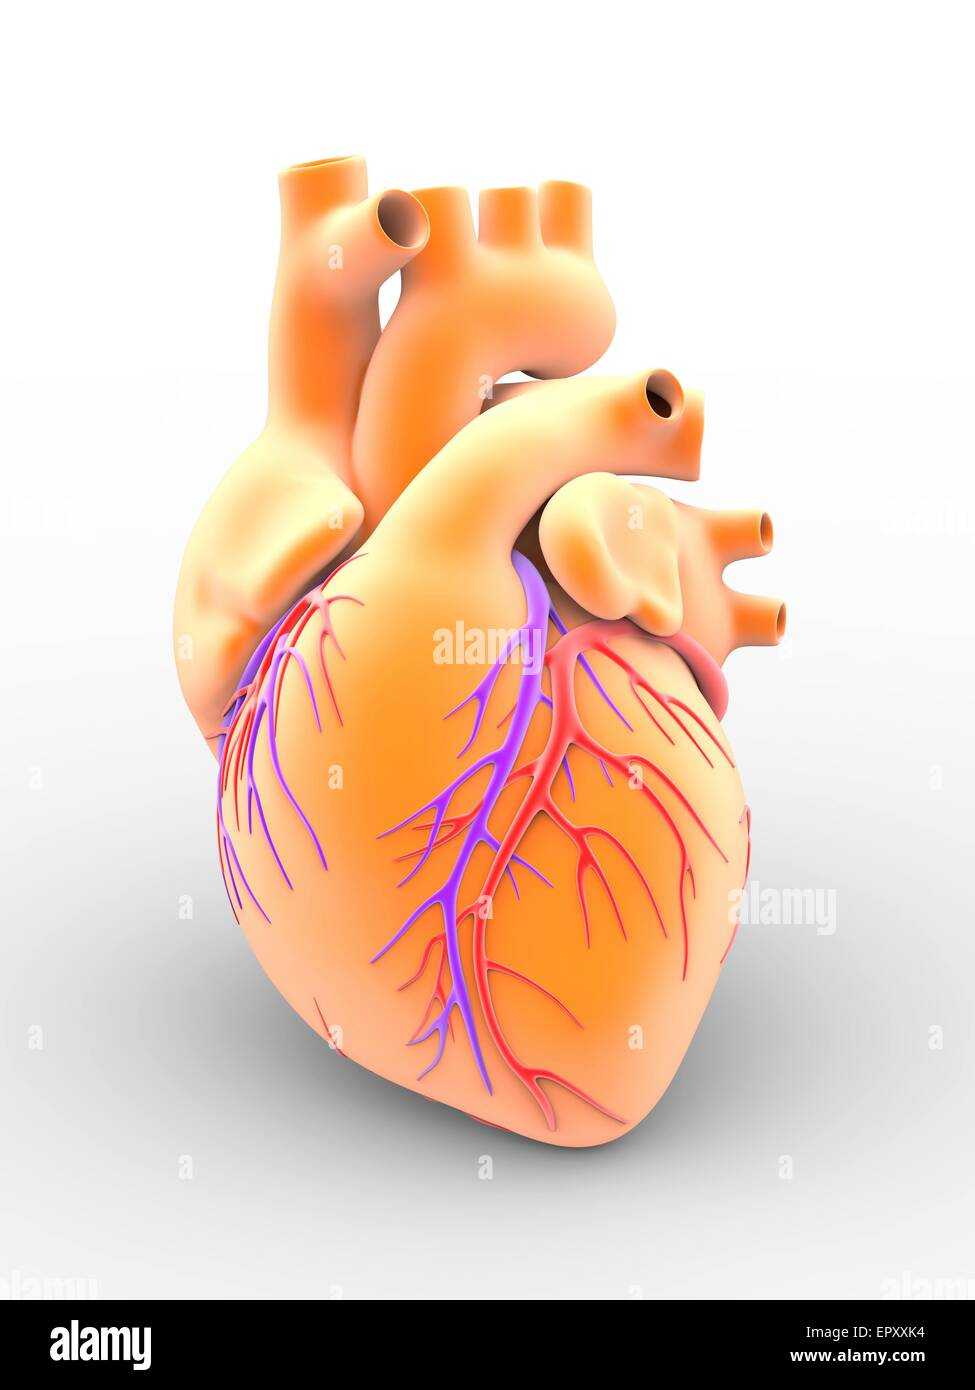 Human Heart Coronary Veins Stock Photos & Human Heart Coronary Veins ...